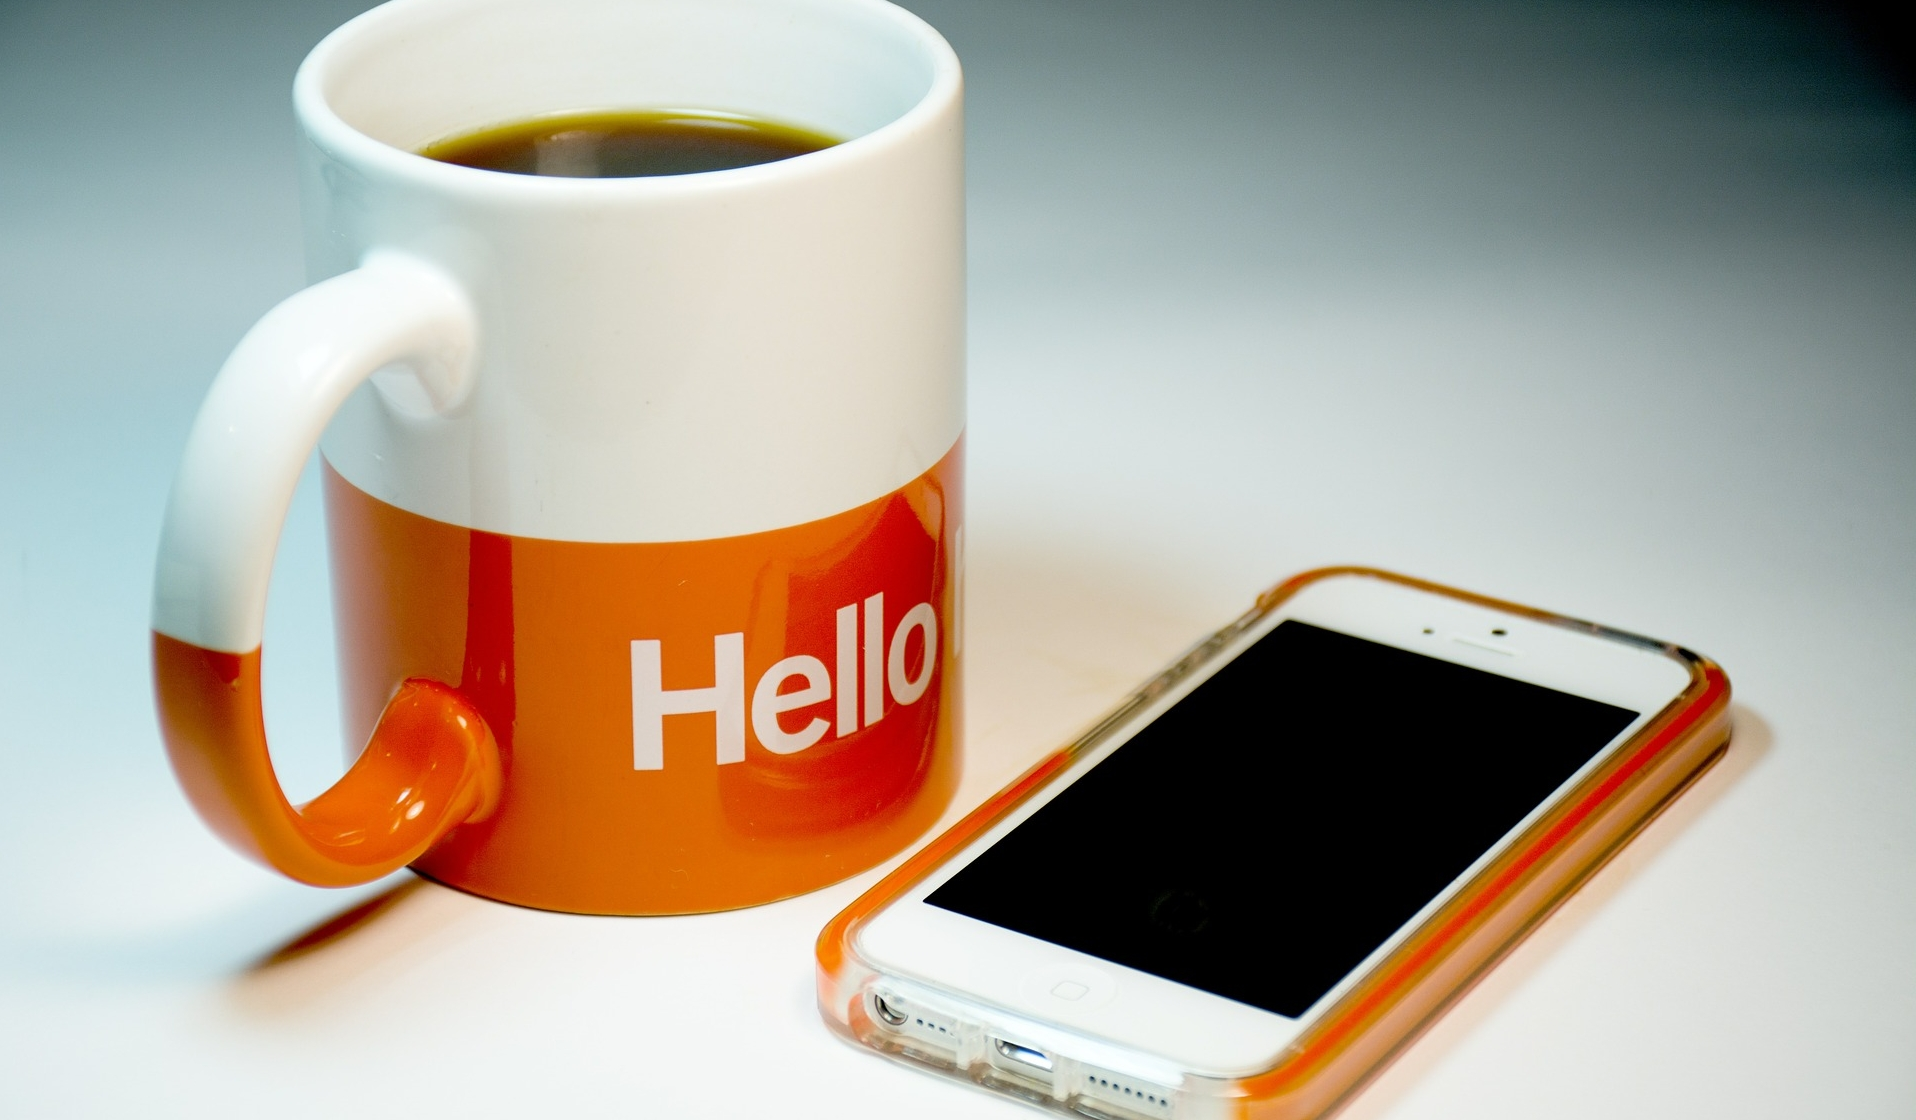 Natalie Bennon mug and phone